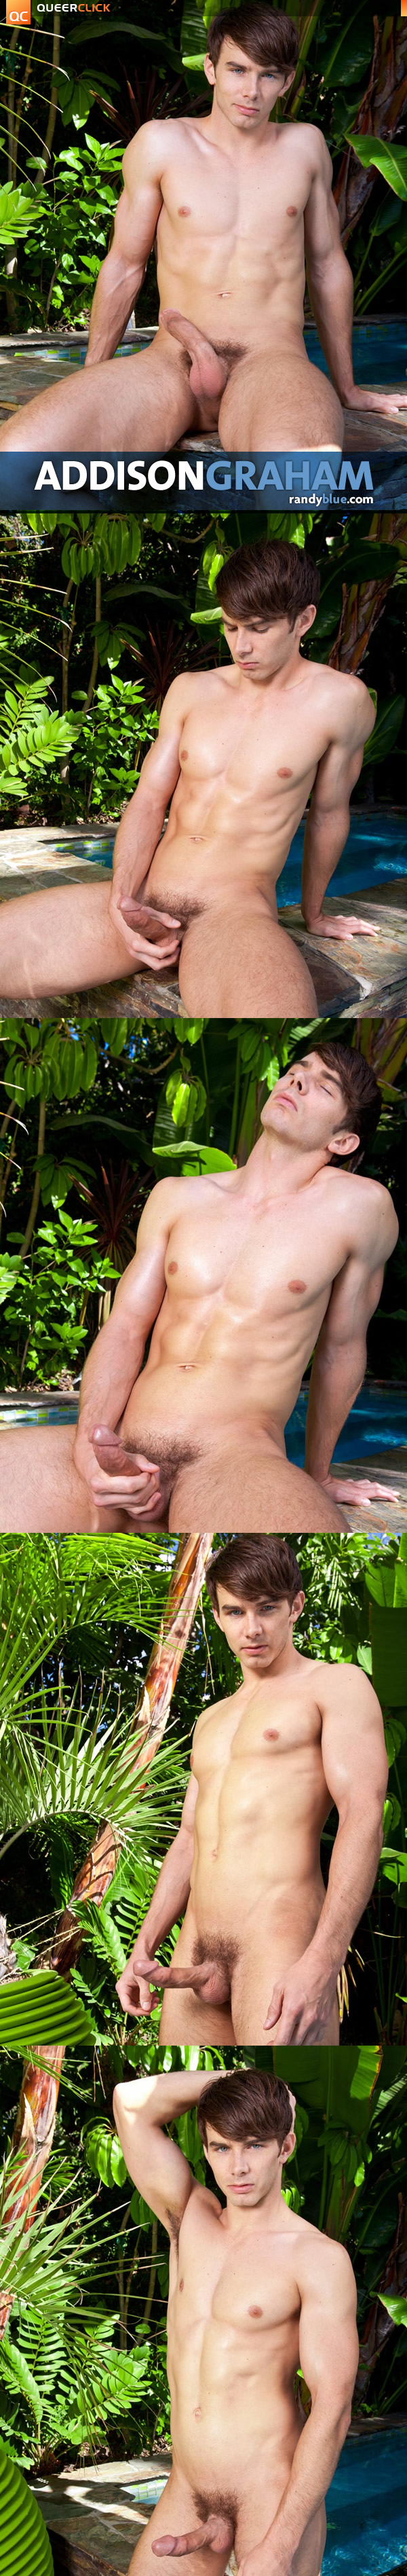 Randy Blue: Addison Graham